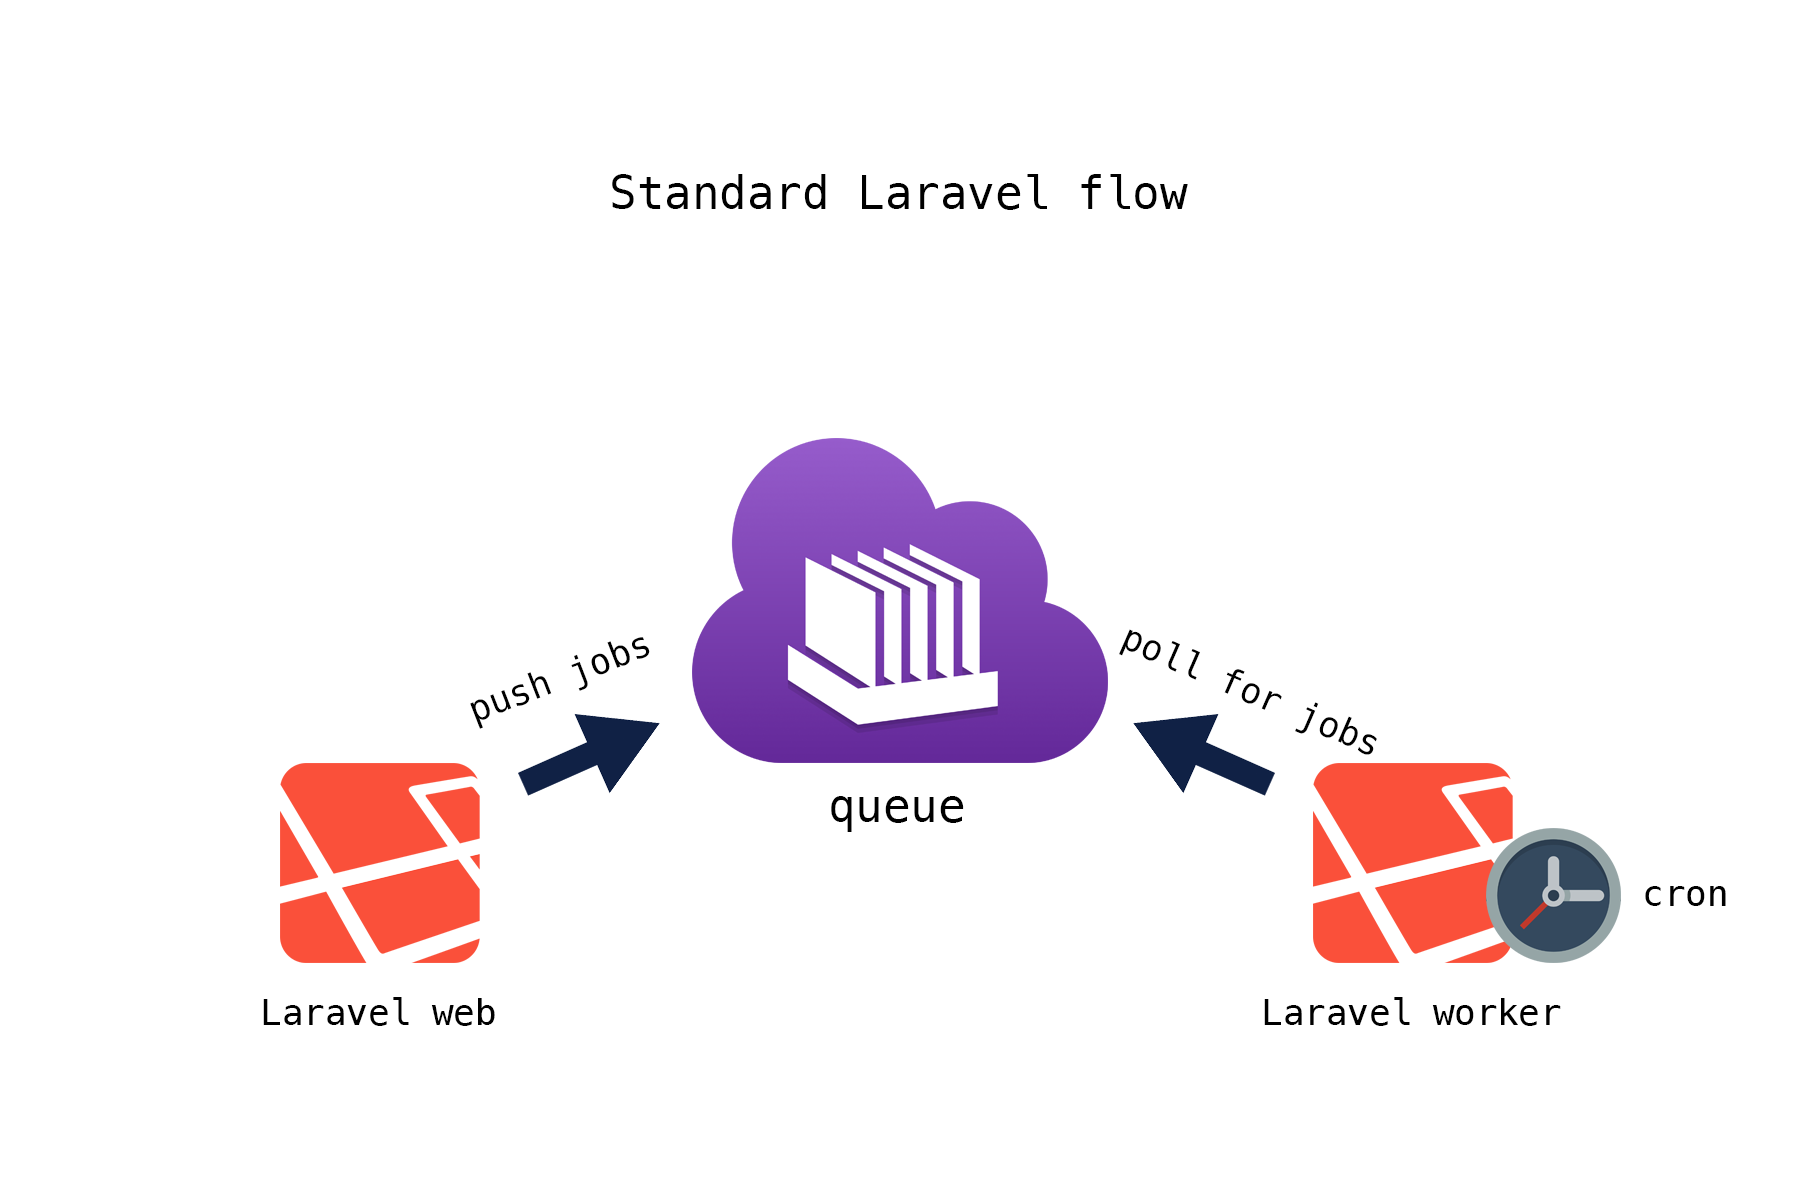 Standard Laravel queue flow